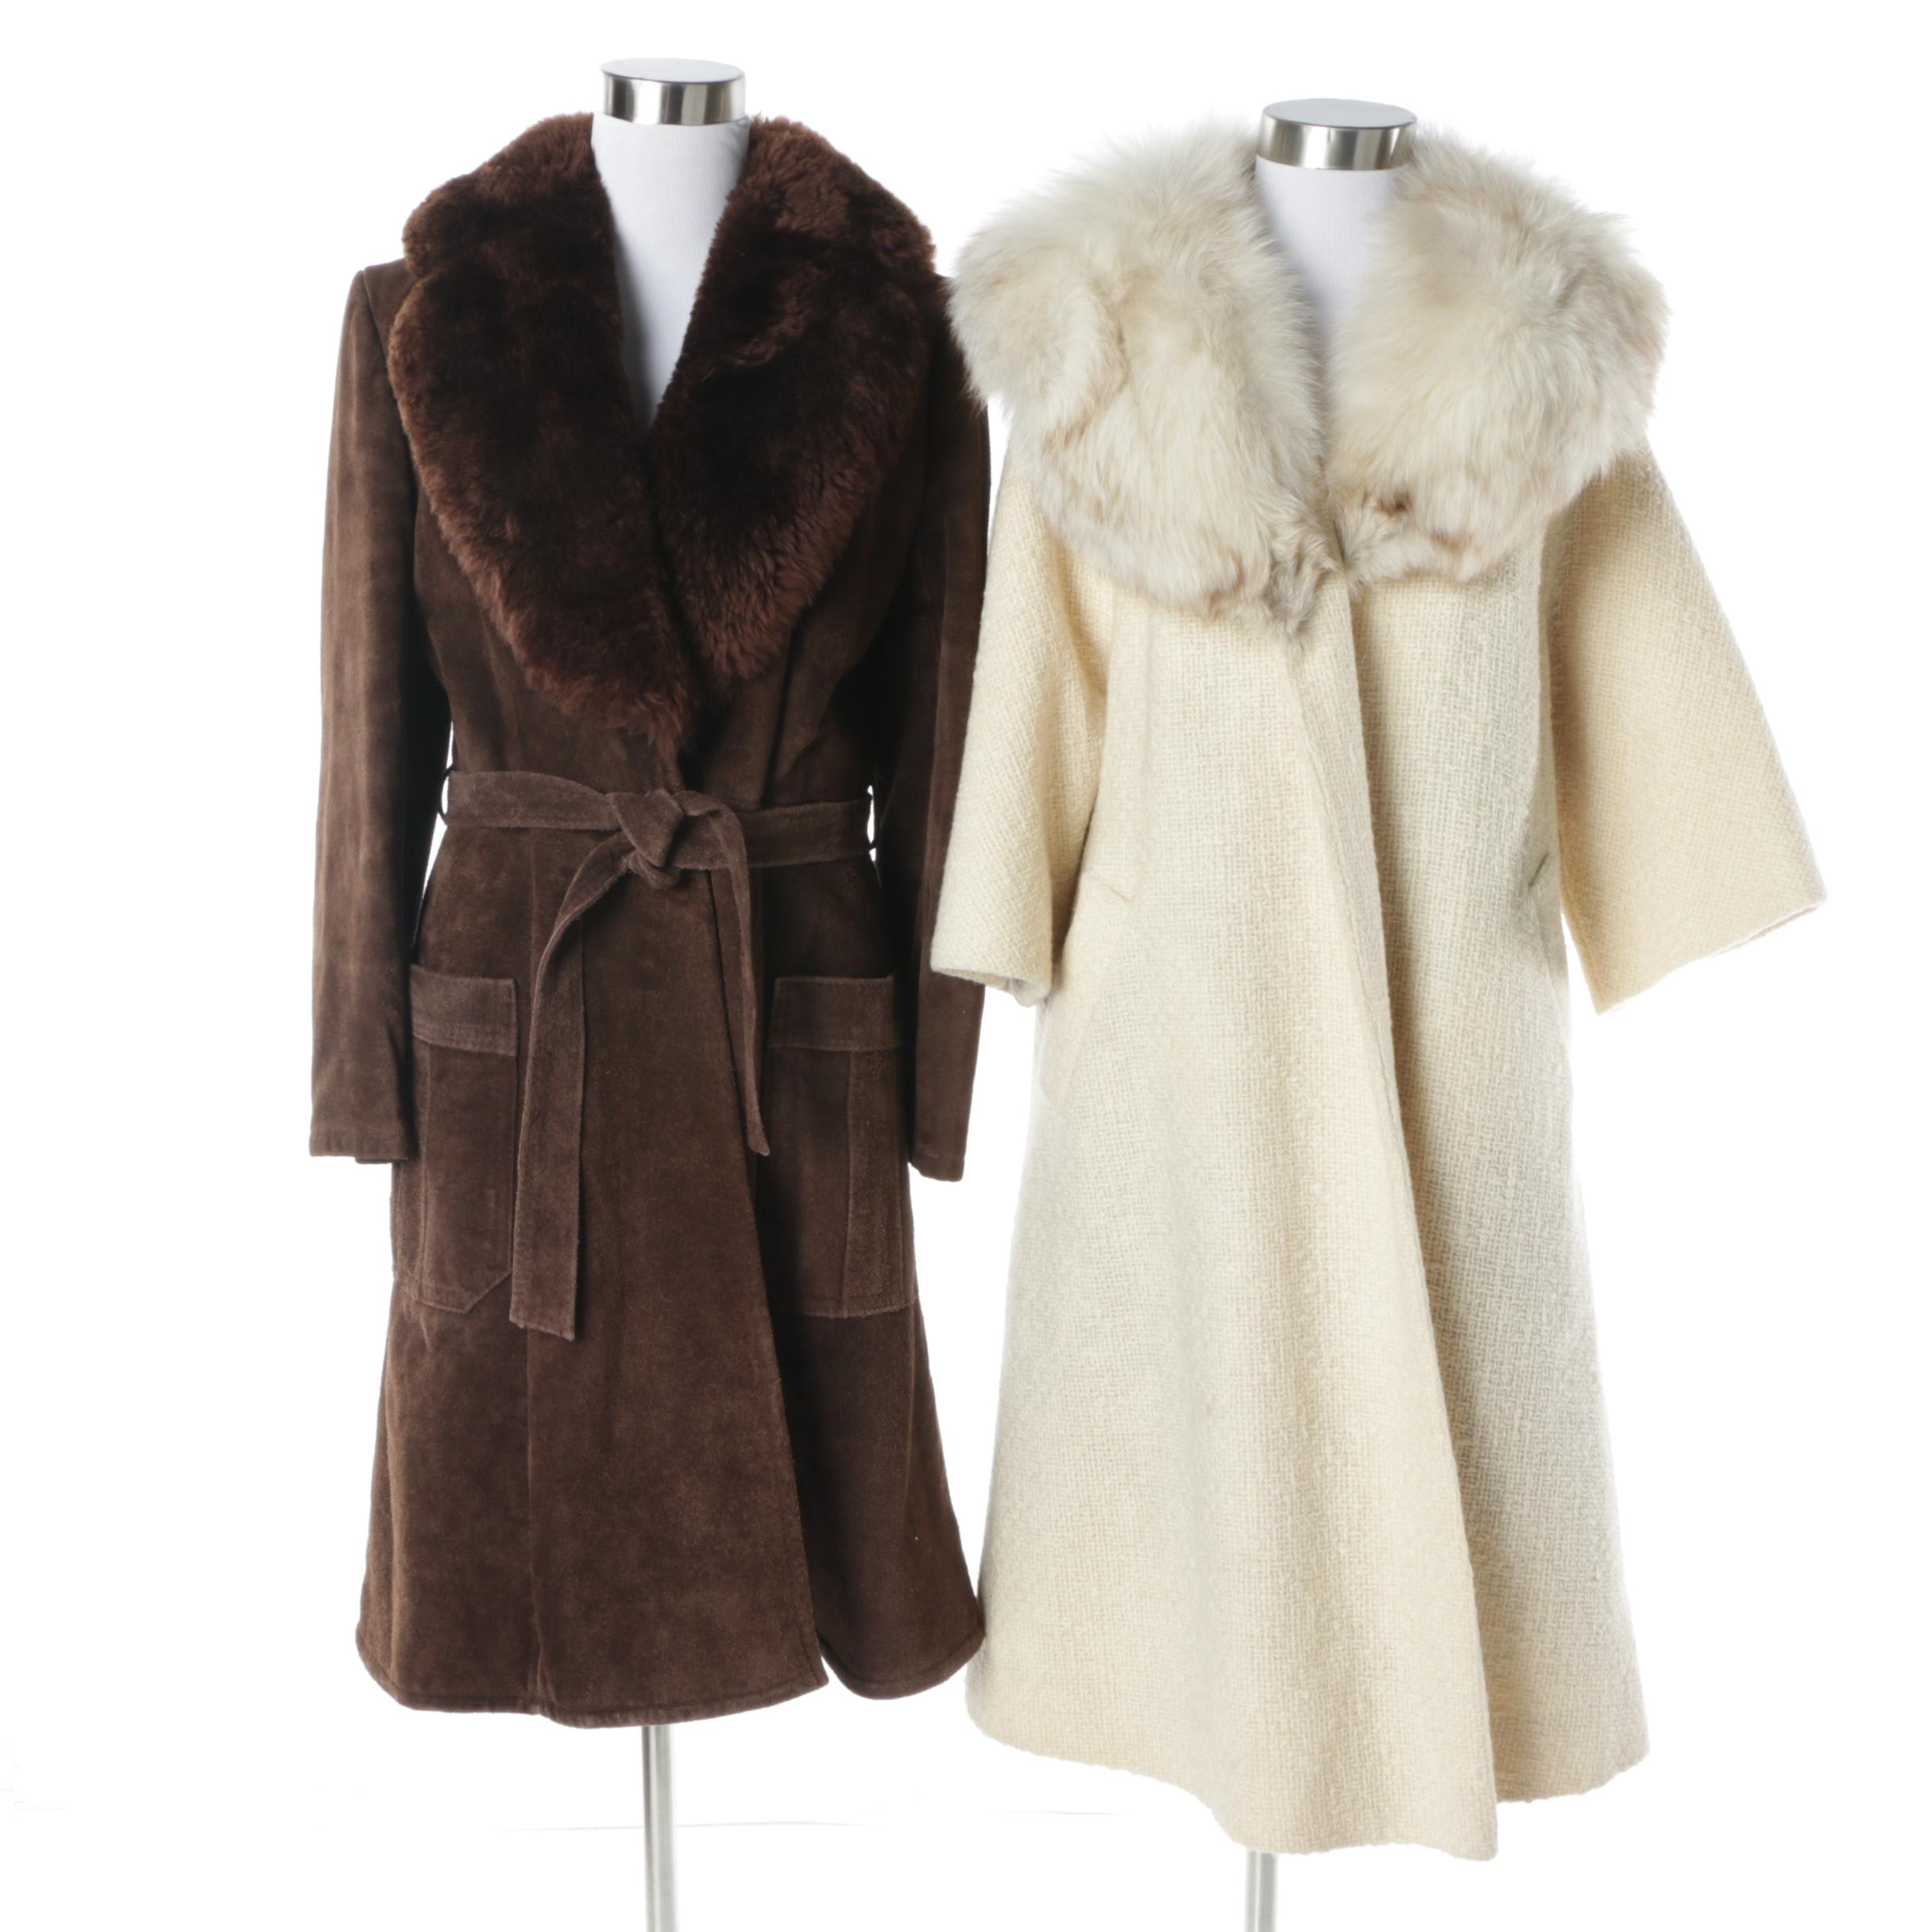 1960s Vintage Swing Coats with Fox and Faux Fur Collars